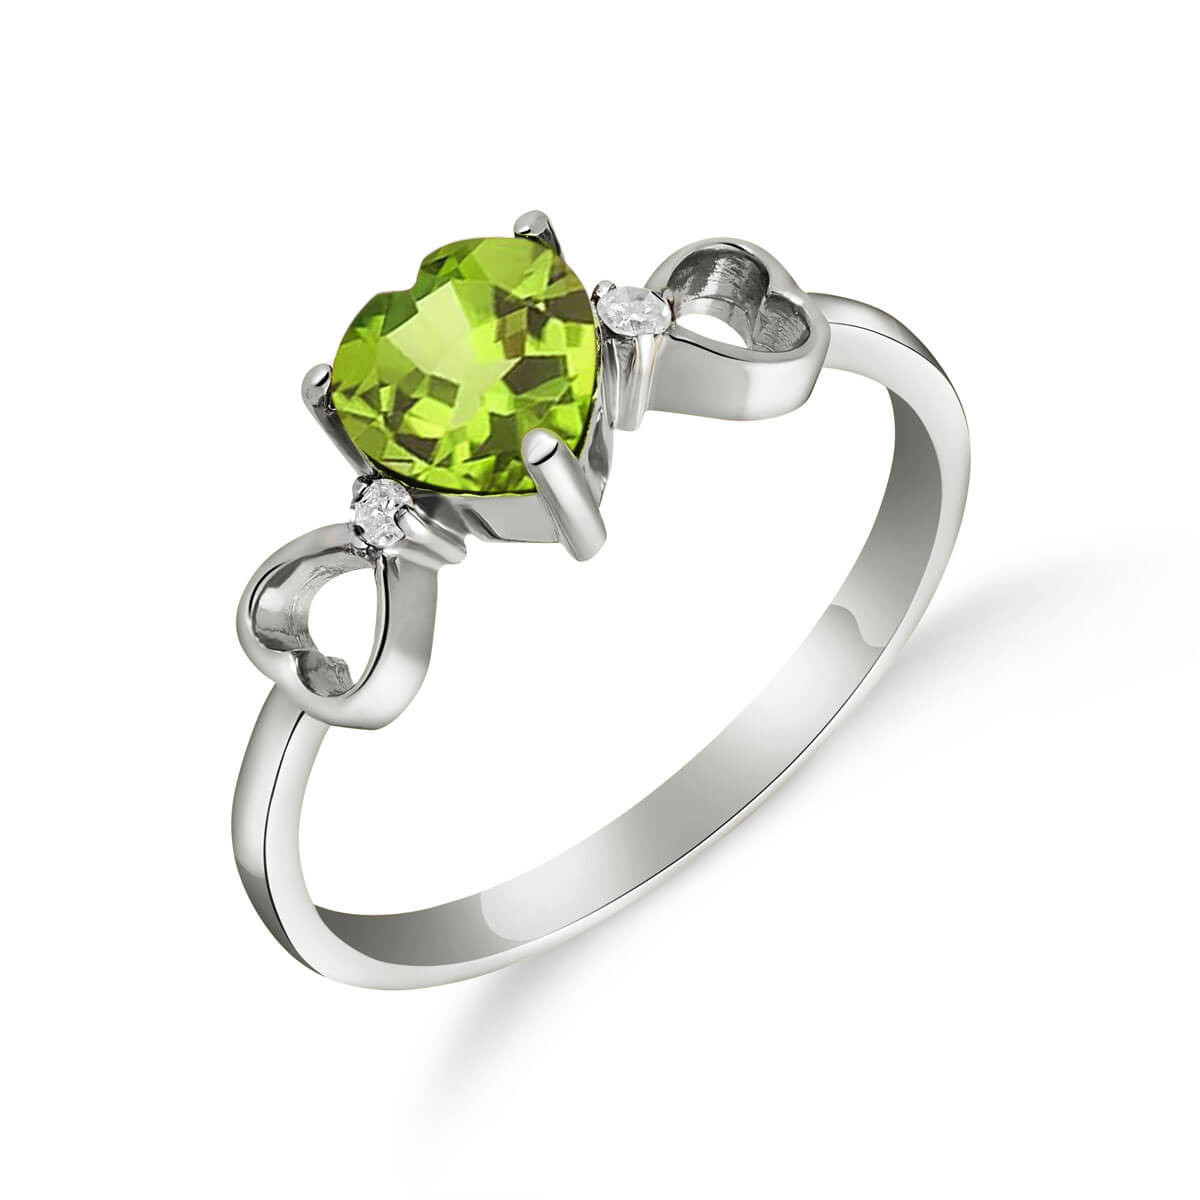 Peridot & Diamond Trinity Ring in 9ct White Gold